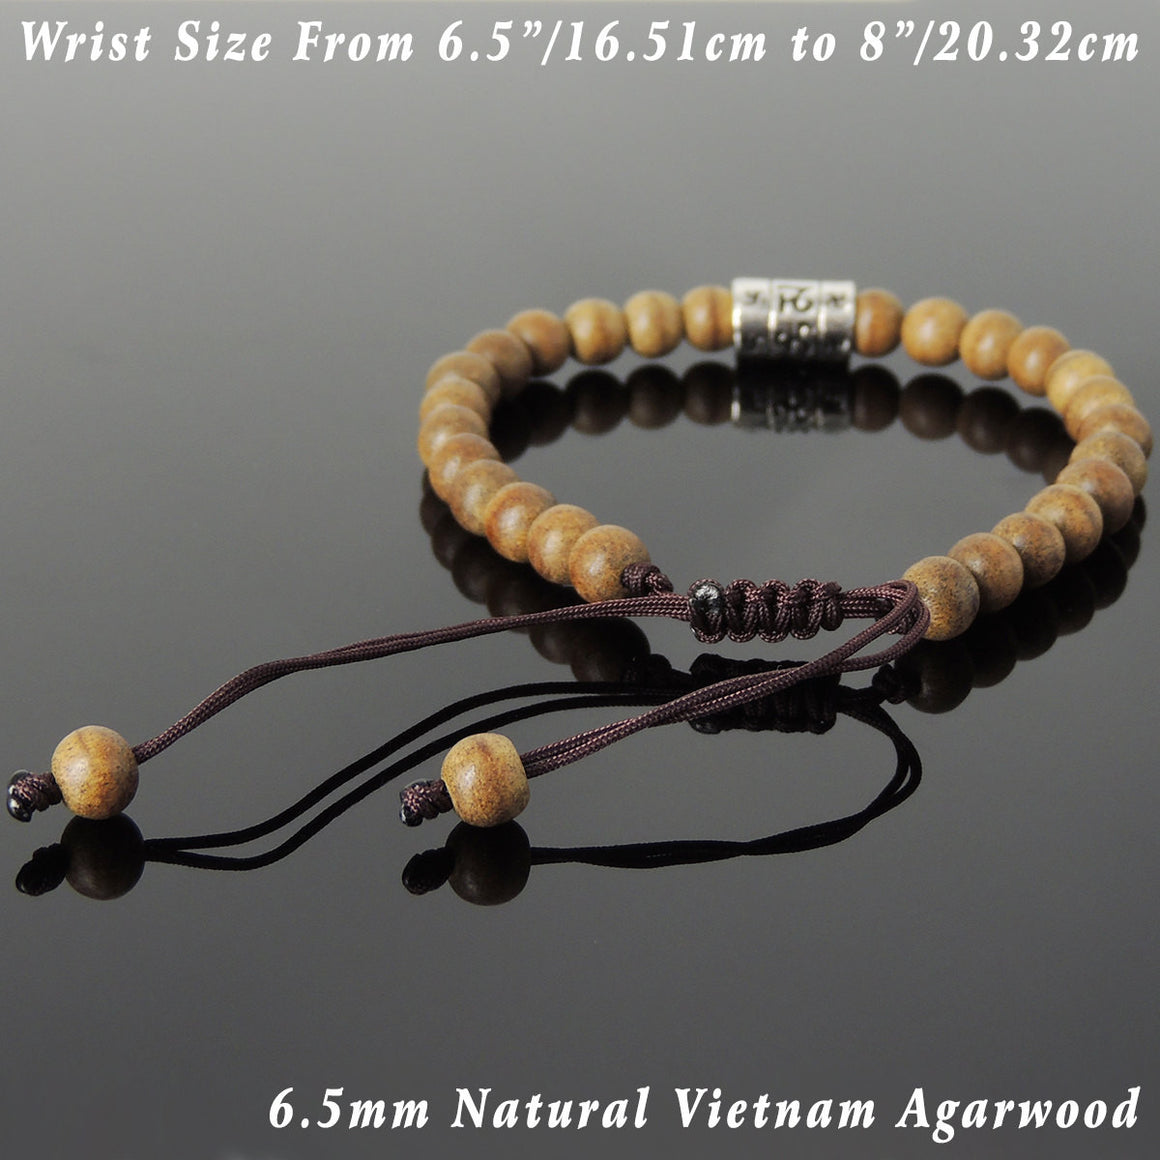 6.5mm Agarwood Mala Adjustable Bracelet with S925 Sterling Silver OM Buddhism Charm - Handmade by Gem & Silver BR835